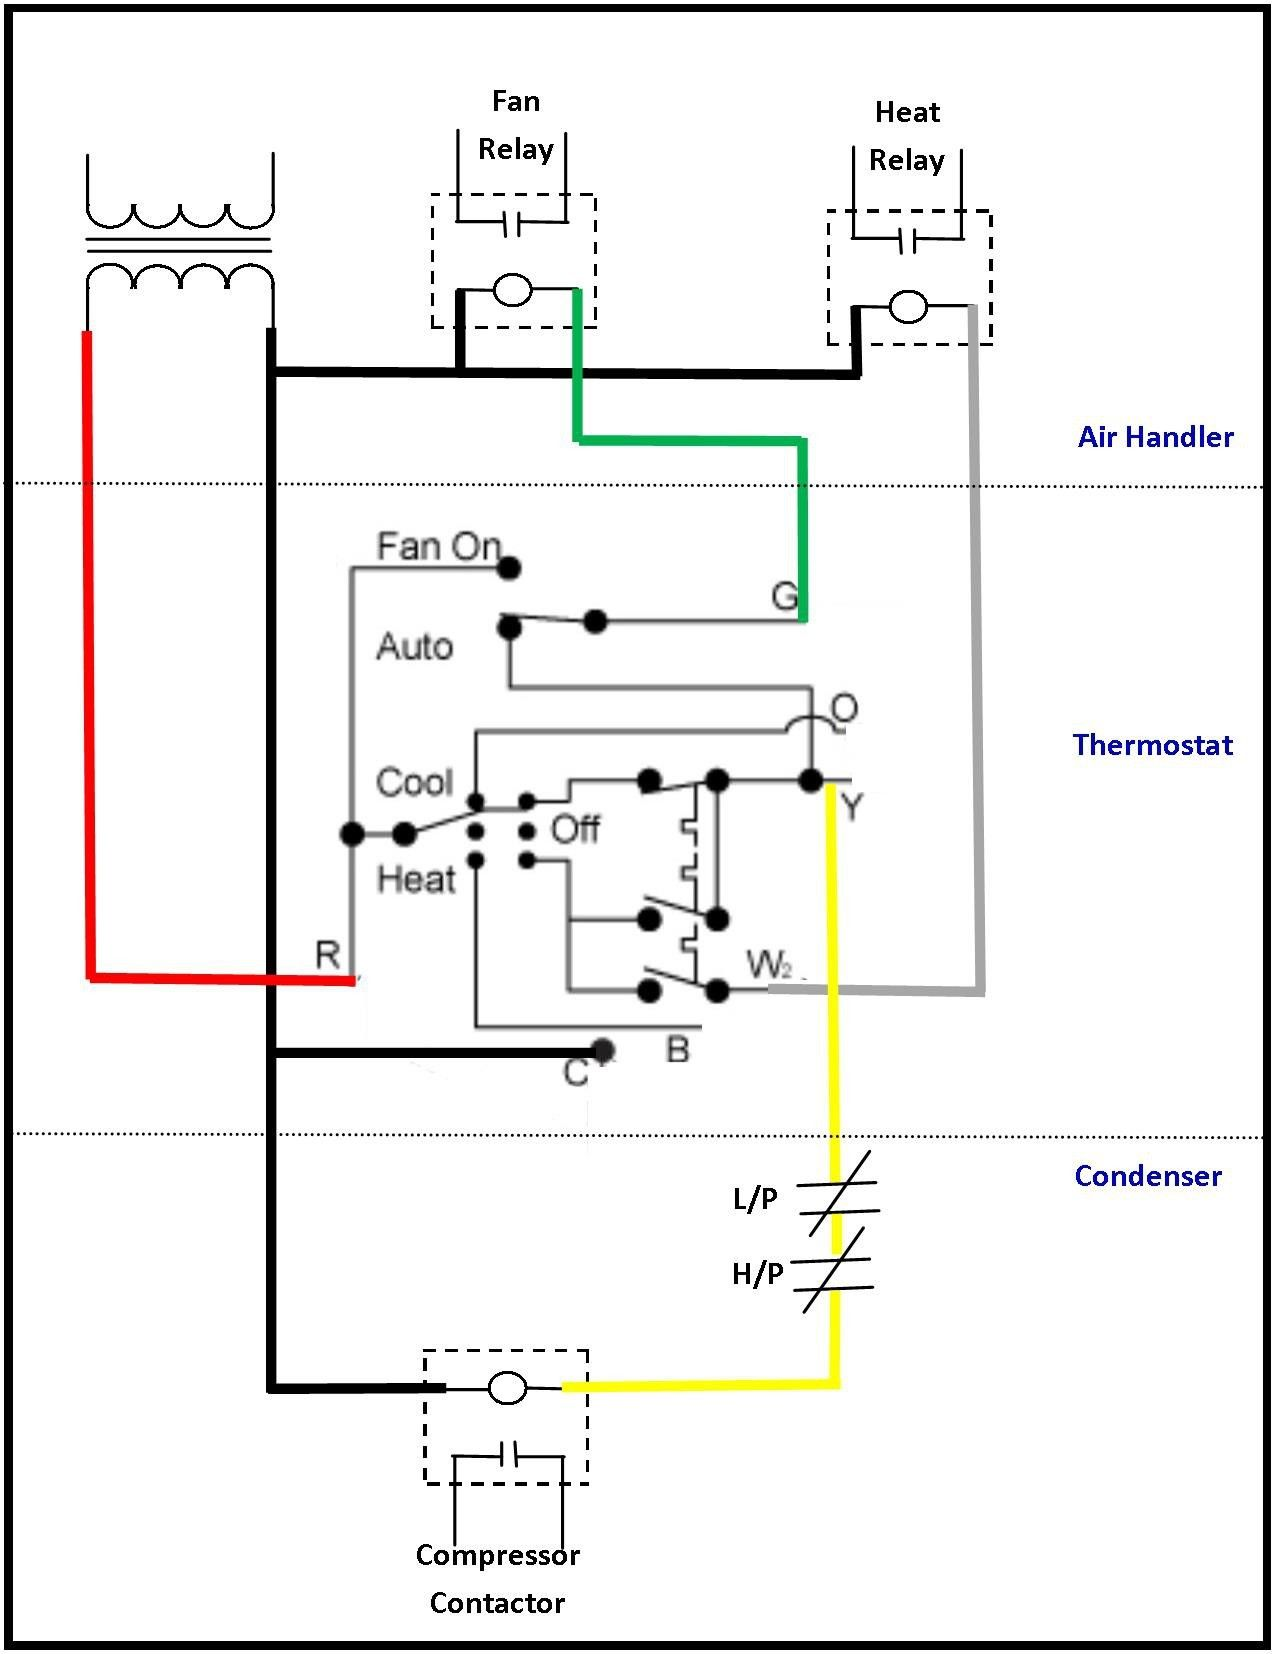 Old Gas Furnace Wiring | Wiring Diagram Old Household Gas Furnace Wiring Diagram on